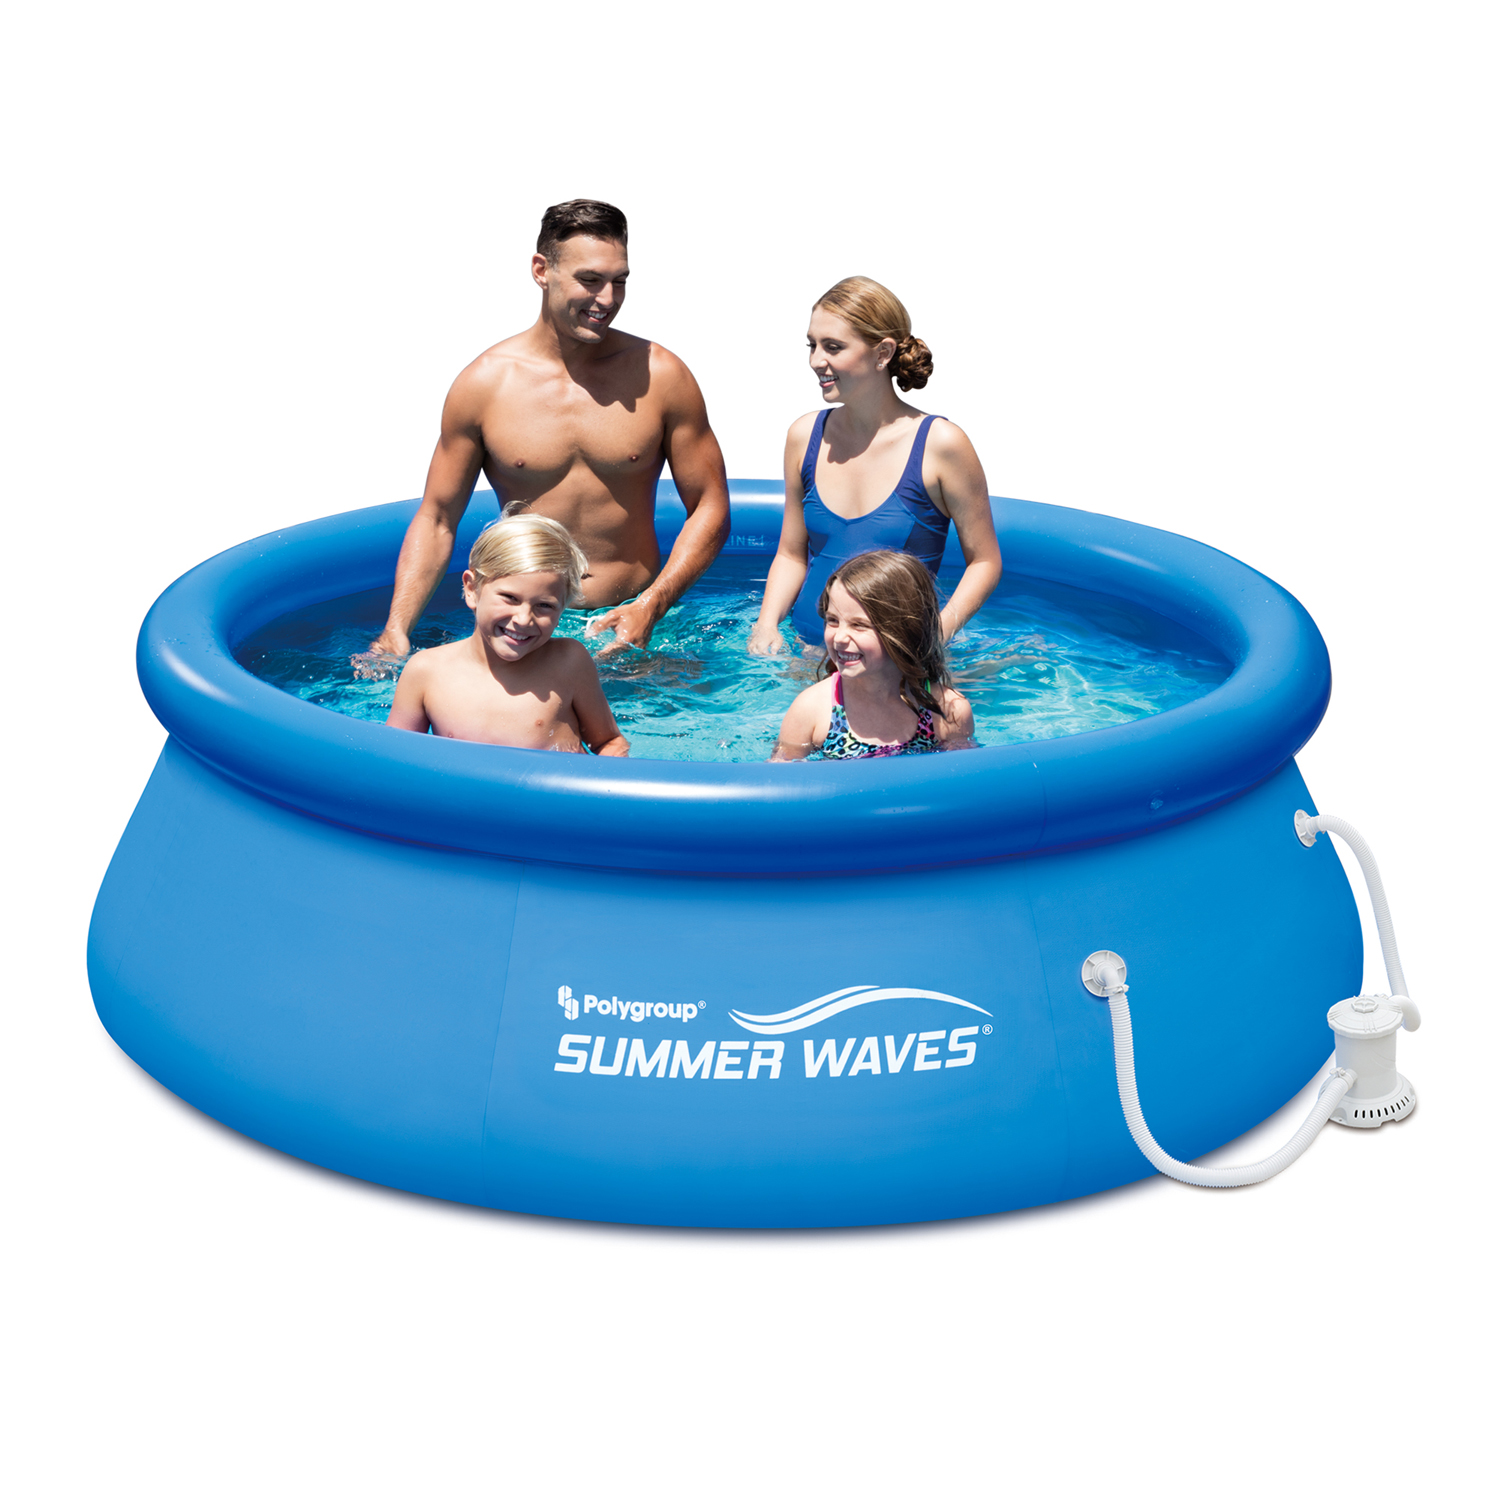 "Summer Waves 8' x 30"" Quick Set Above Ground Swimming Pool with Filter Pump System"